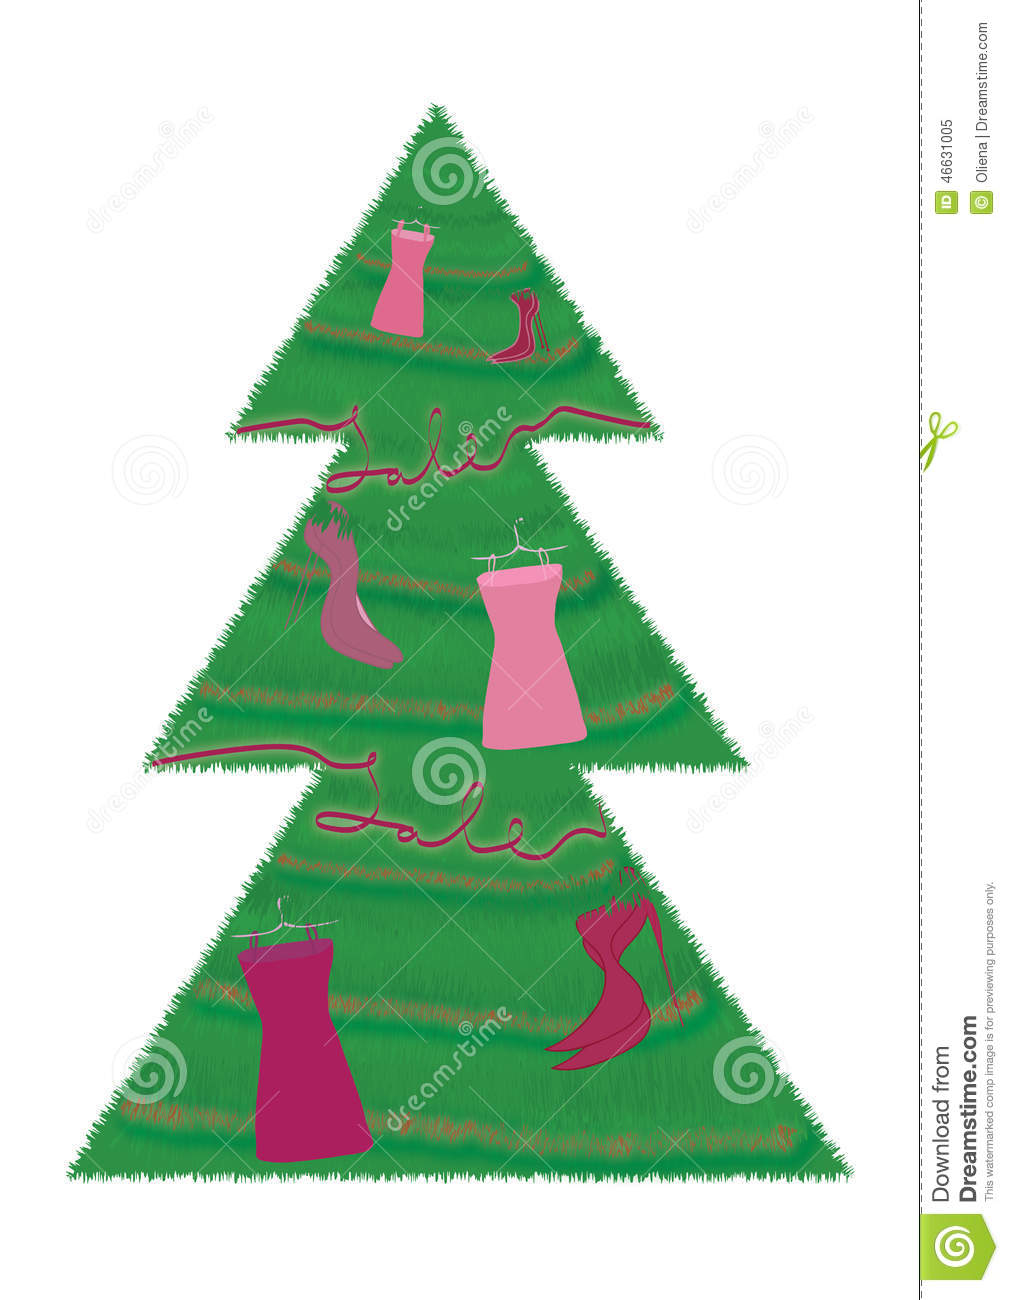 Christmas tree with sale fashion shoes and dress decorations